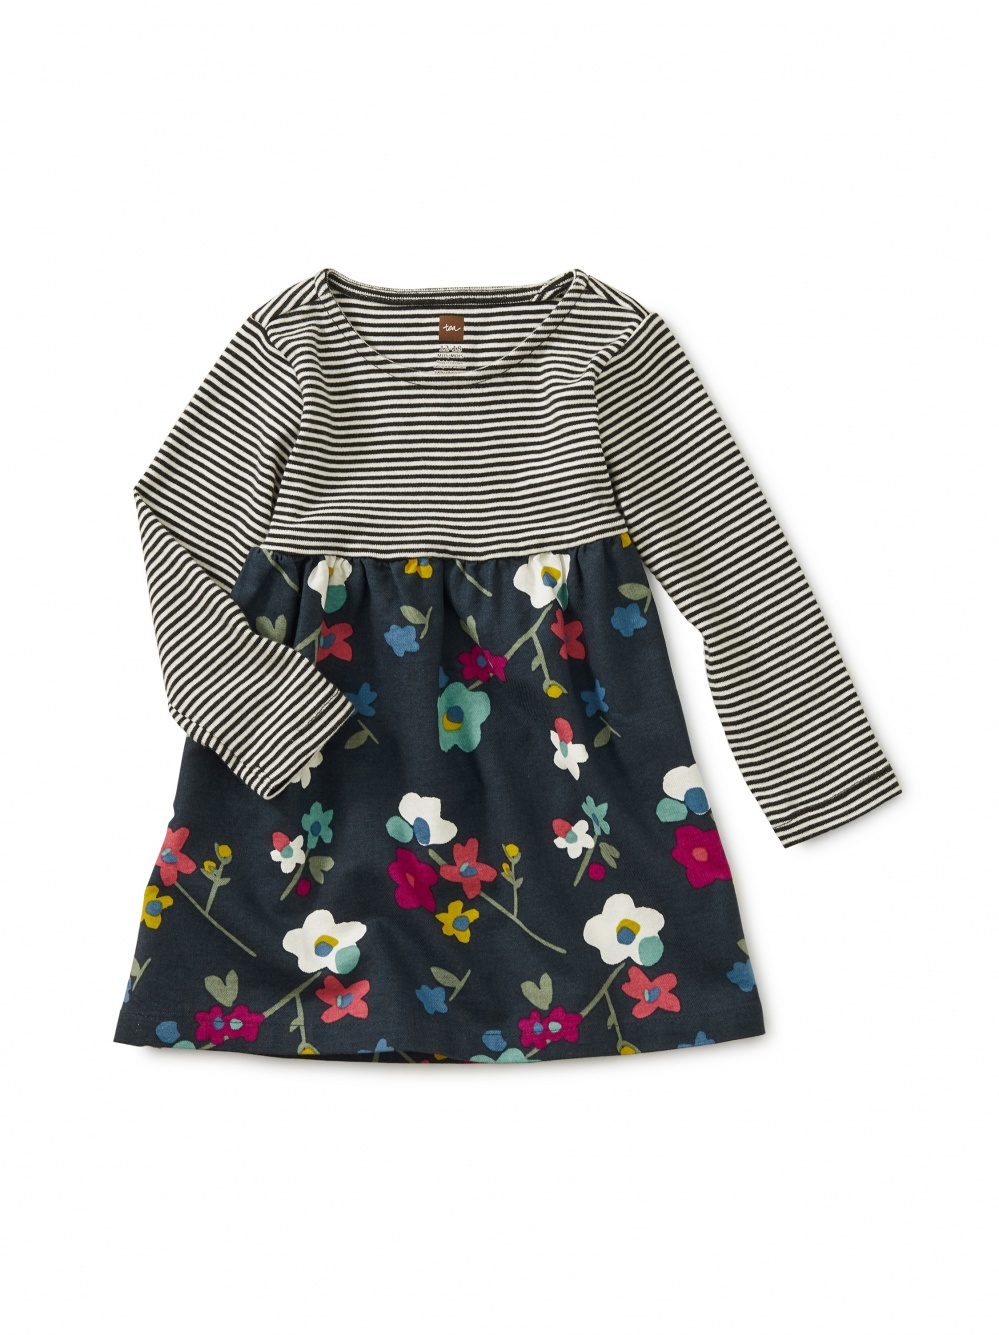 Two-Tone Baby Dress